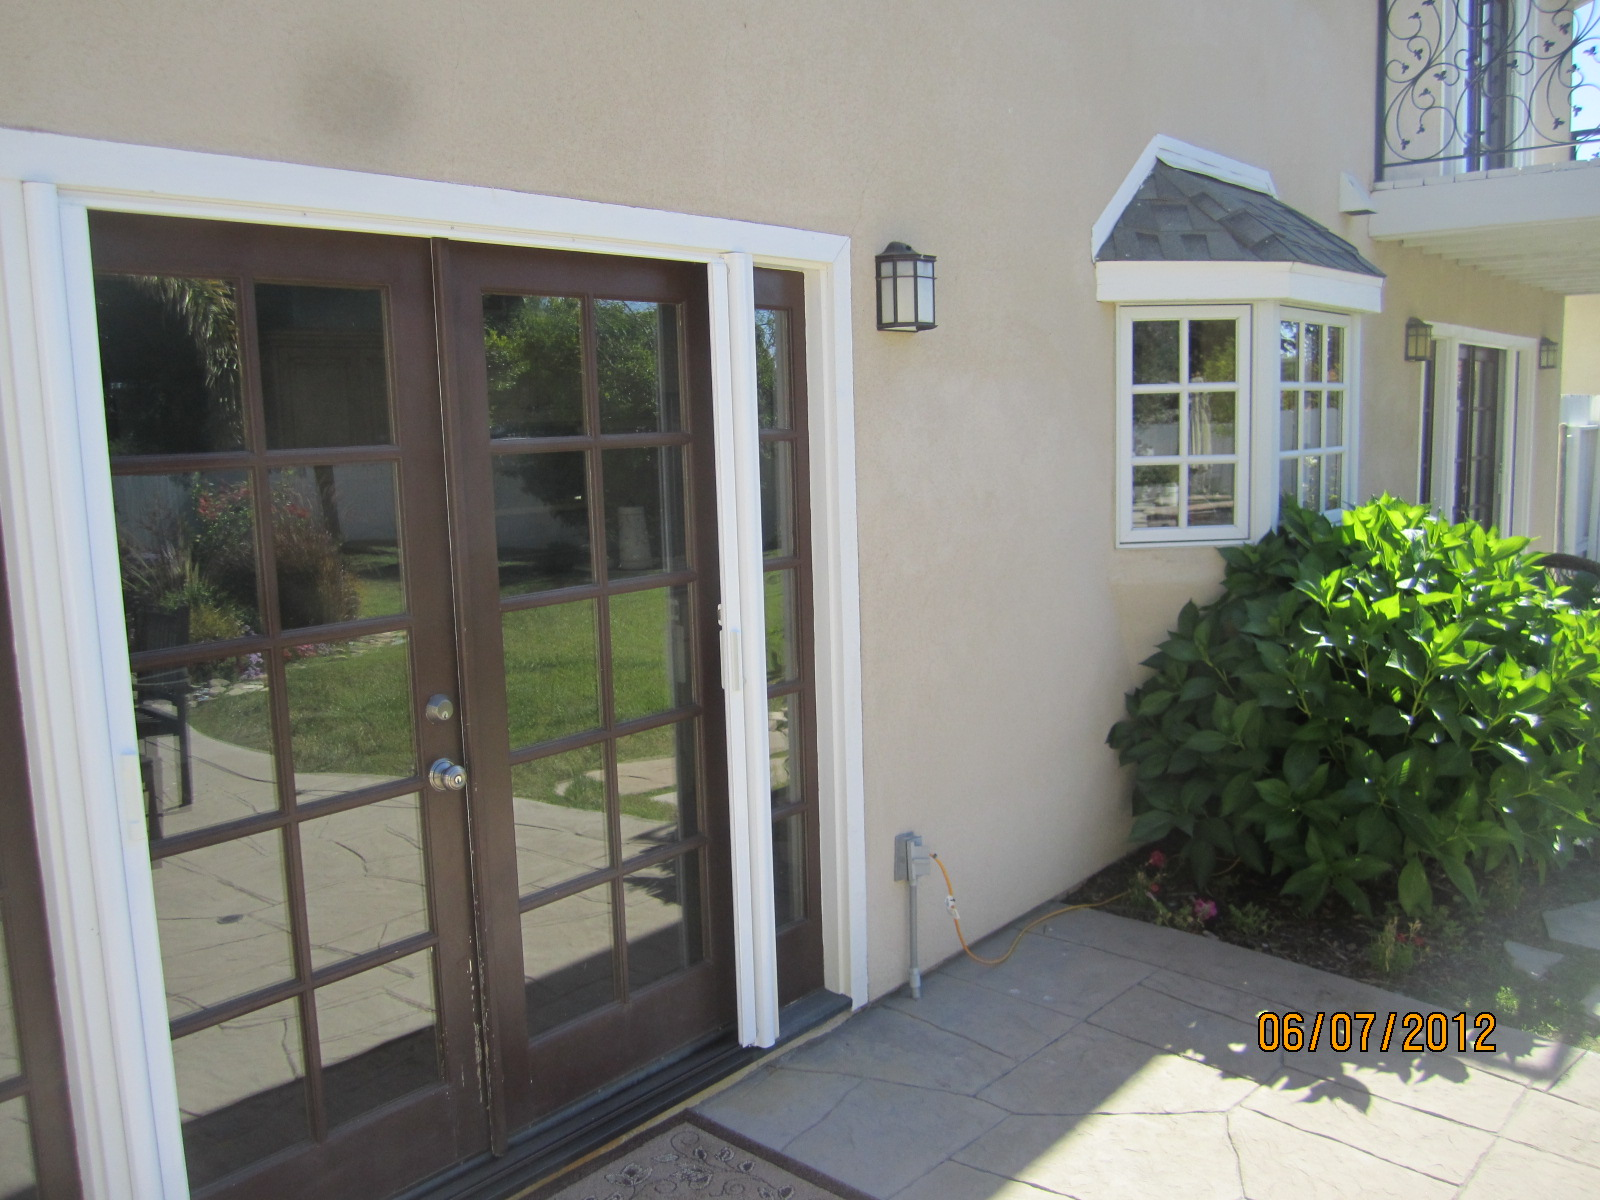 Marvelous Exterior View Retracted French Doors Of Retractable Screen Doors Sherman  Oaks